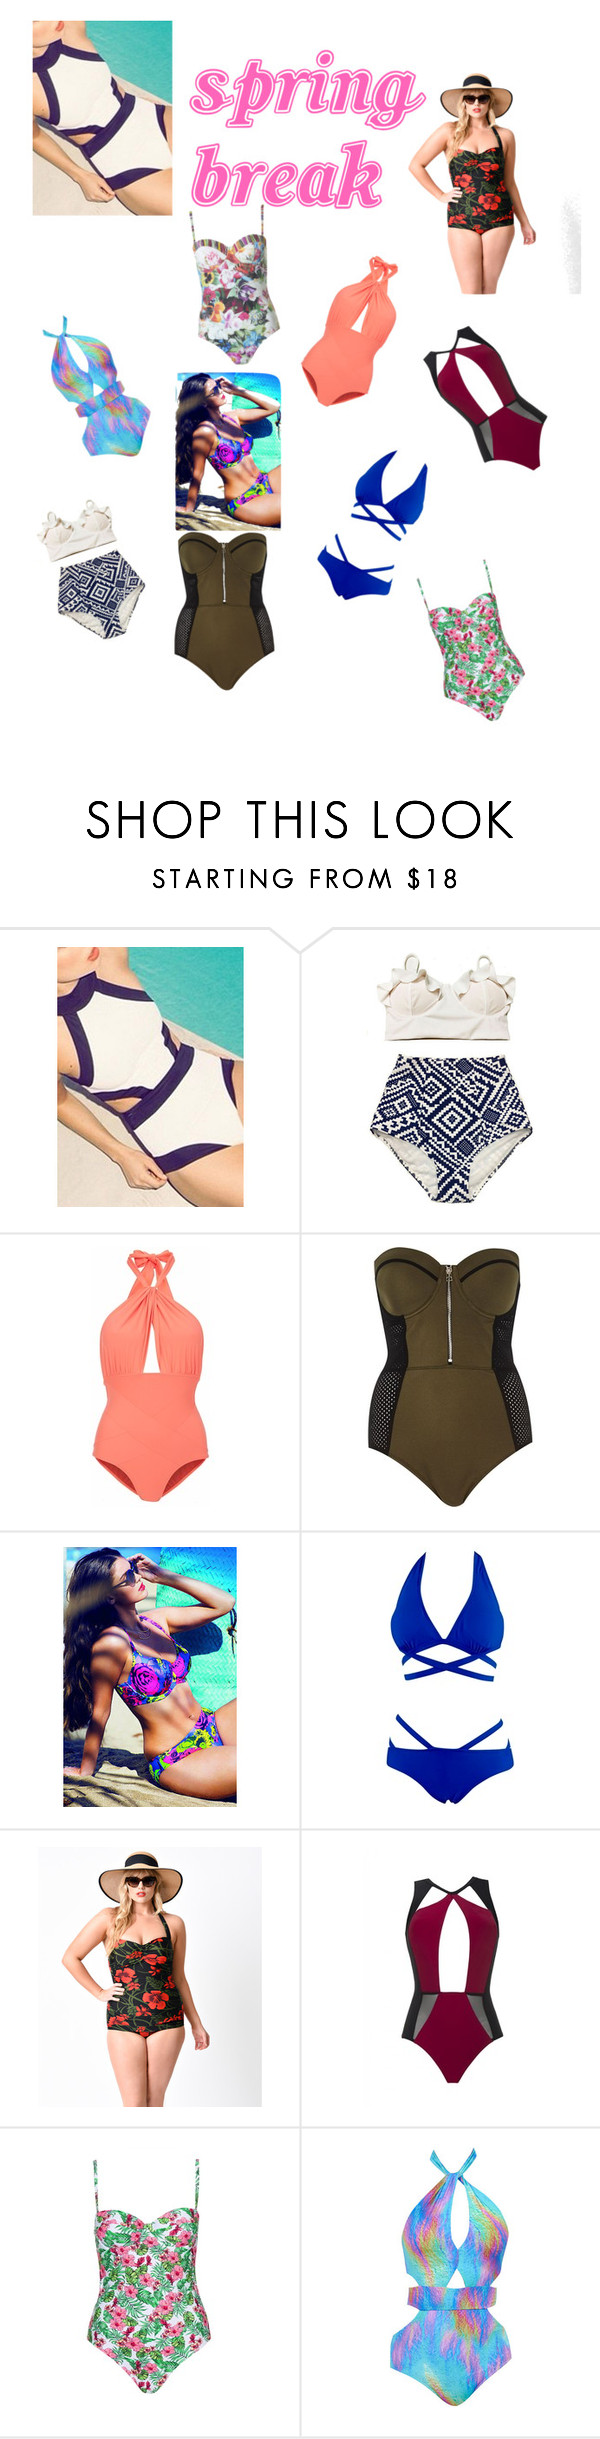 """""""SWIMSUITS - SPRING BREAK READY"""" by slayedbyk on Polyvore featuring Lilliput & Felix, River Island, Esther Williams, MOEVA, Topshop and Ted Baker"""